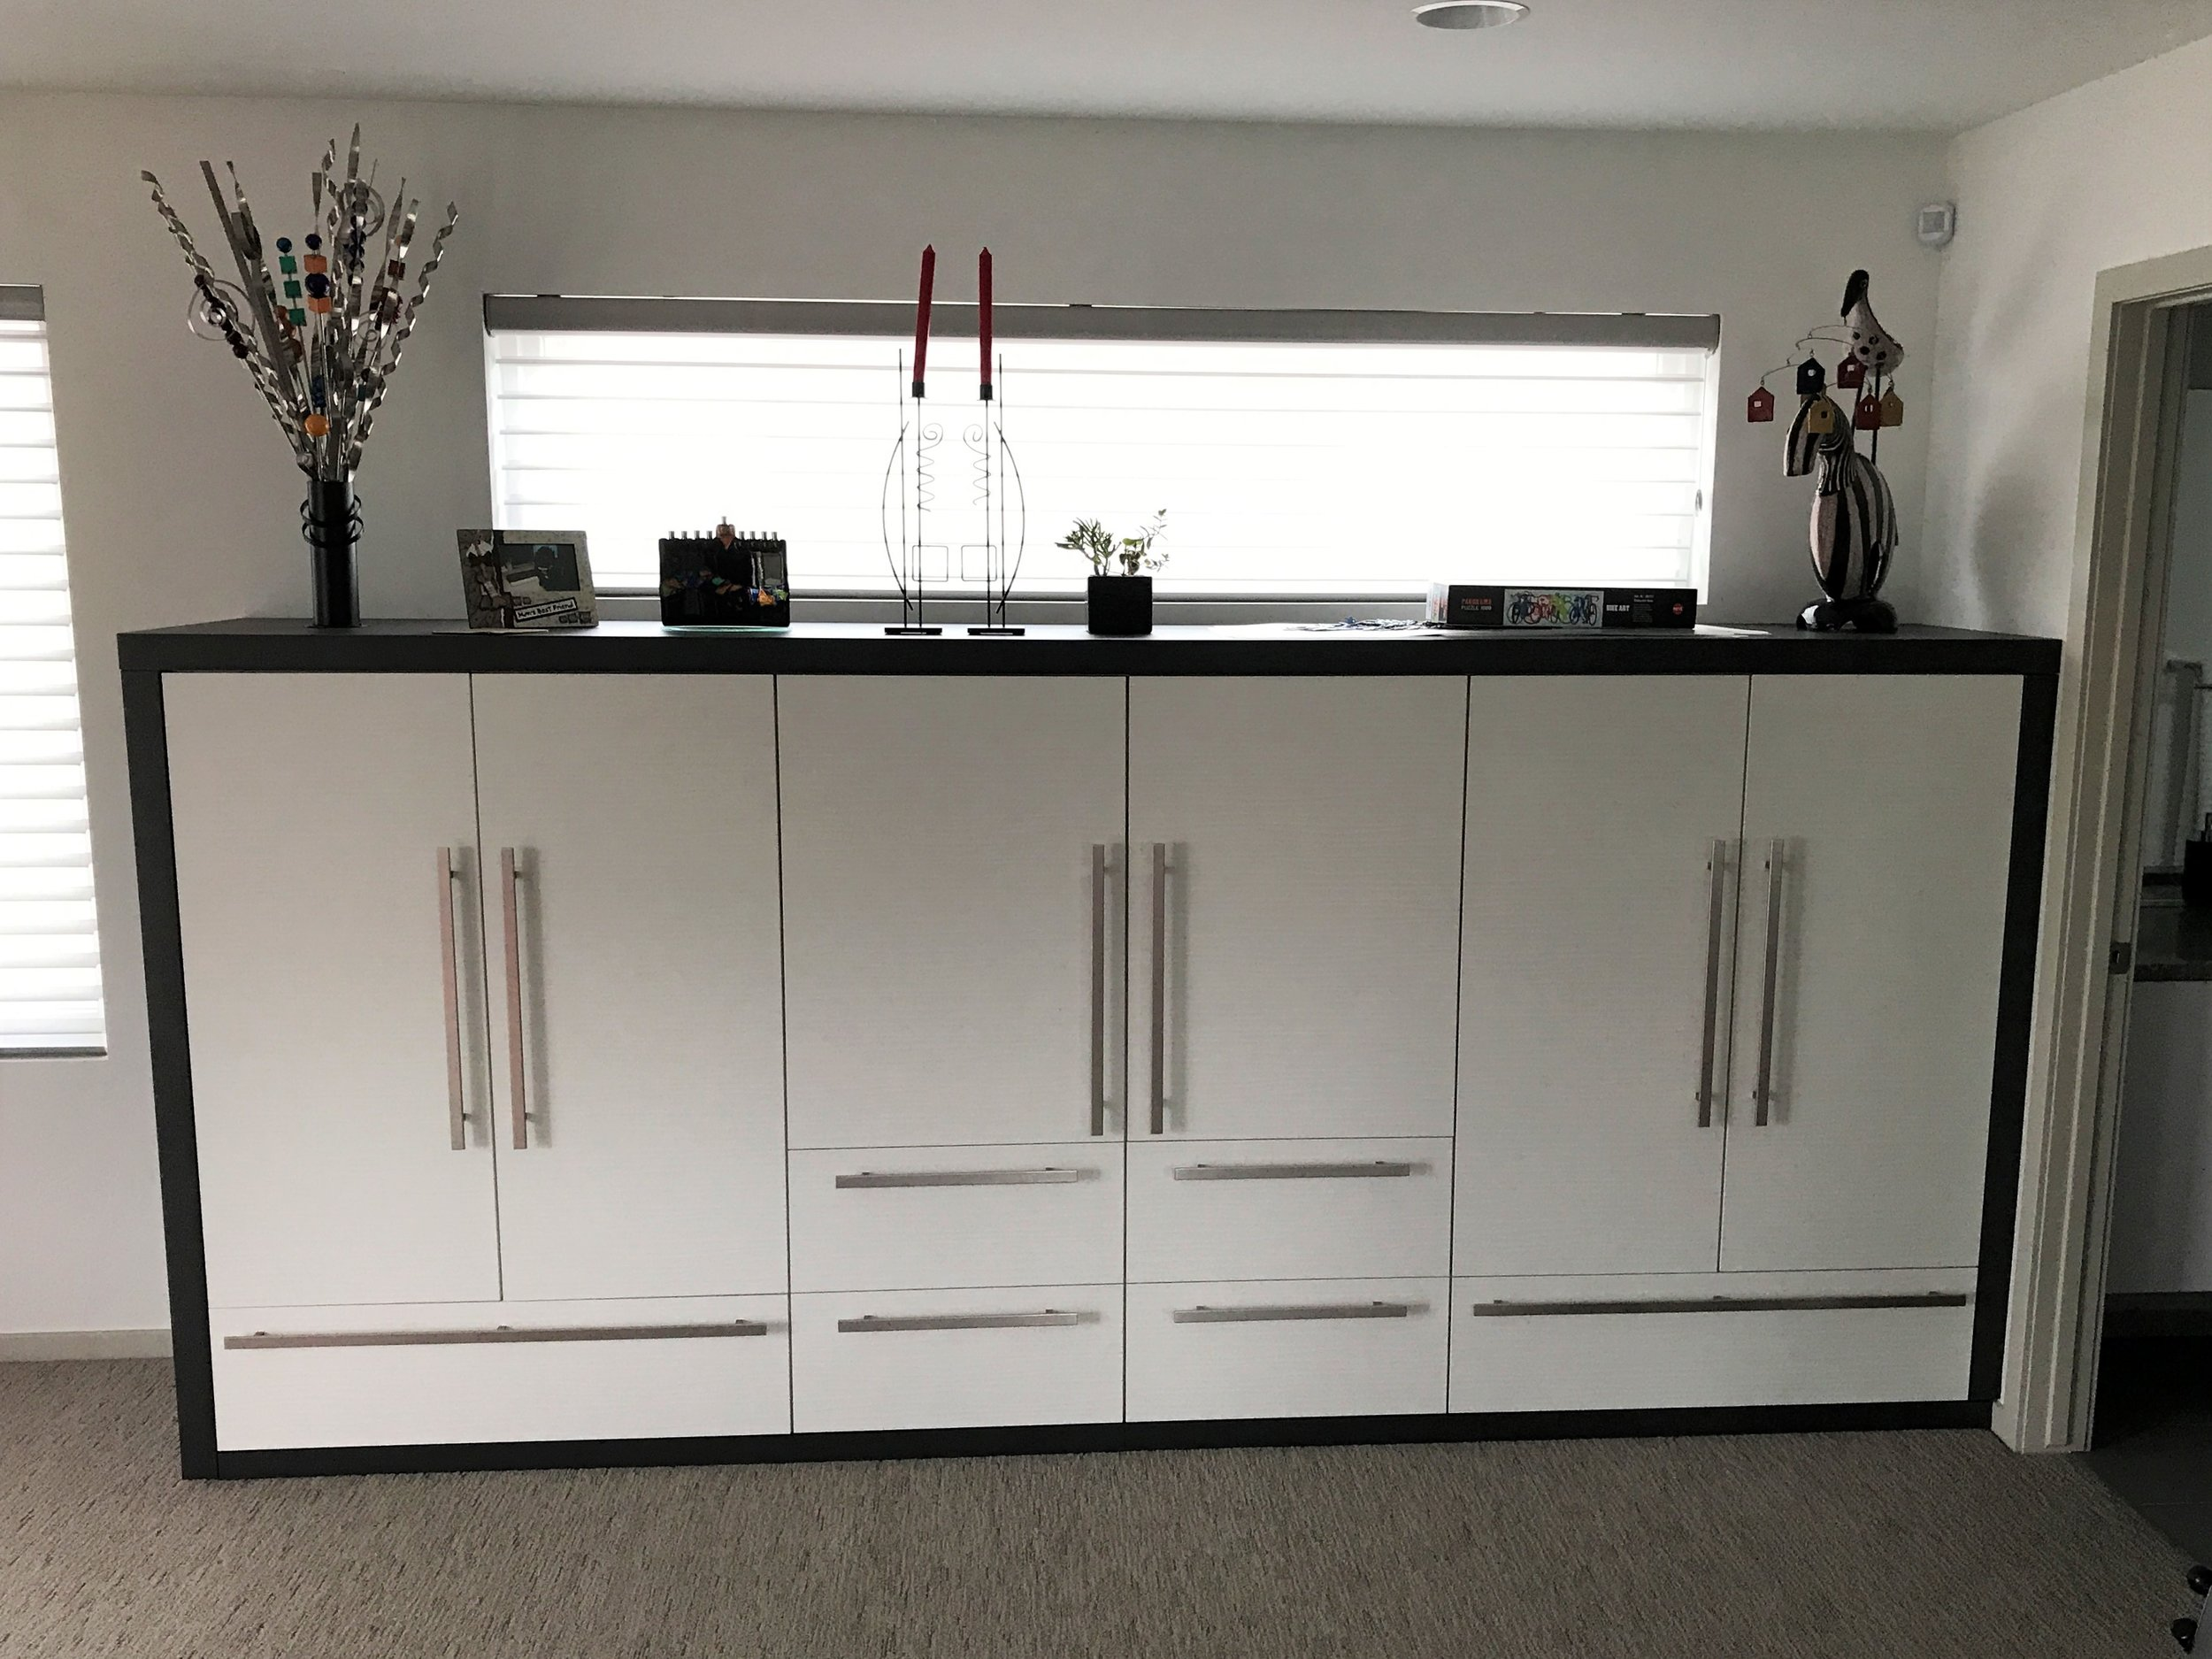 cabinetry 13.JPG